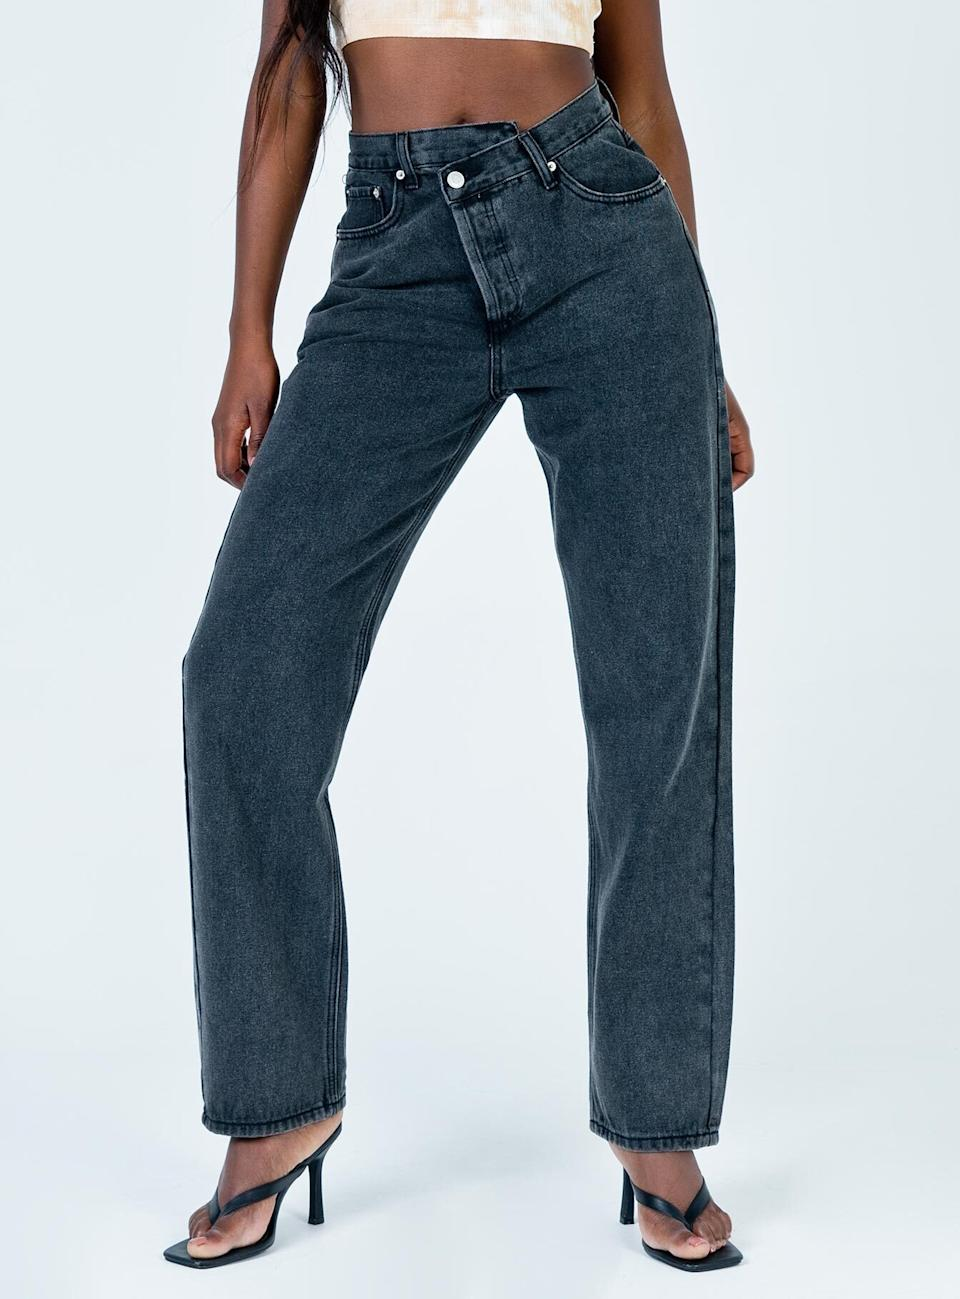 Holly Asymmetric Straight Leg Jean. Image via Princess Polly.